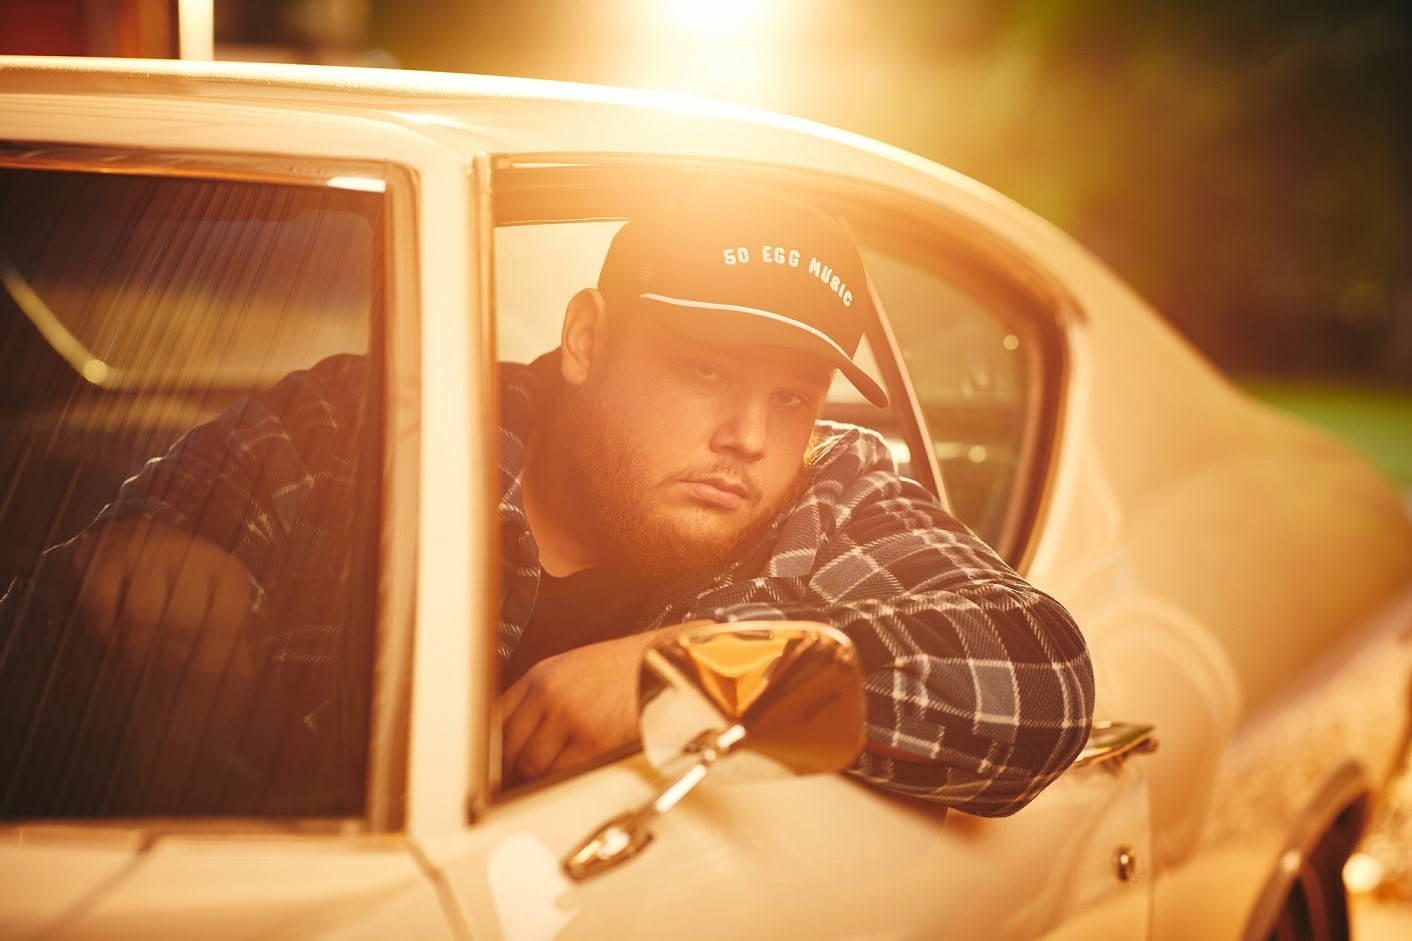 LUKE COMBS' NEW EP THE PREQUEL OUT TODAY